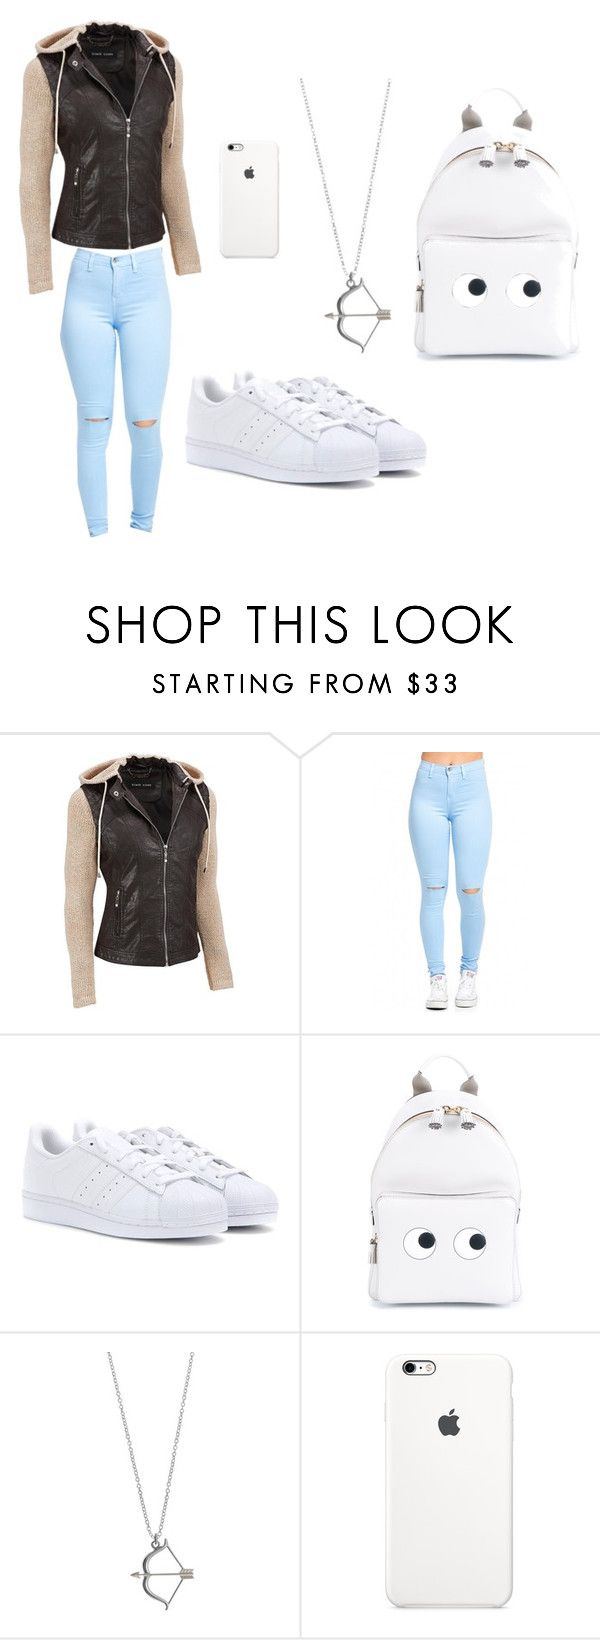 """Untitled #43"" by silvija-velicko ❤ liked on Polyvore featuring adidas and Anya Hindmarch"